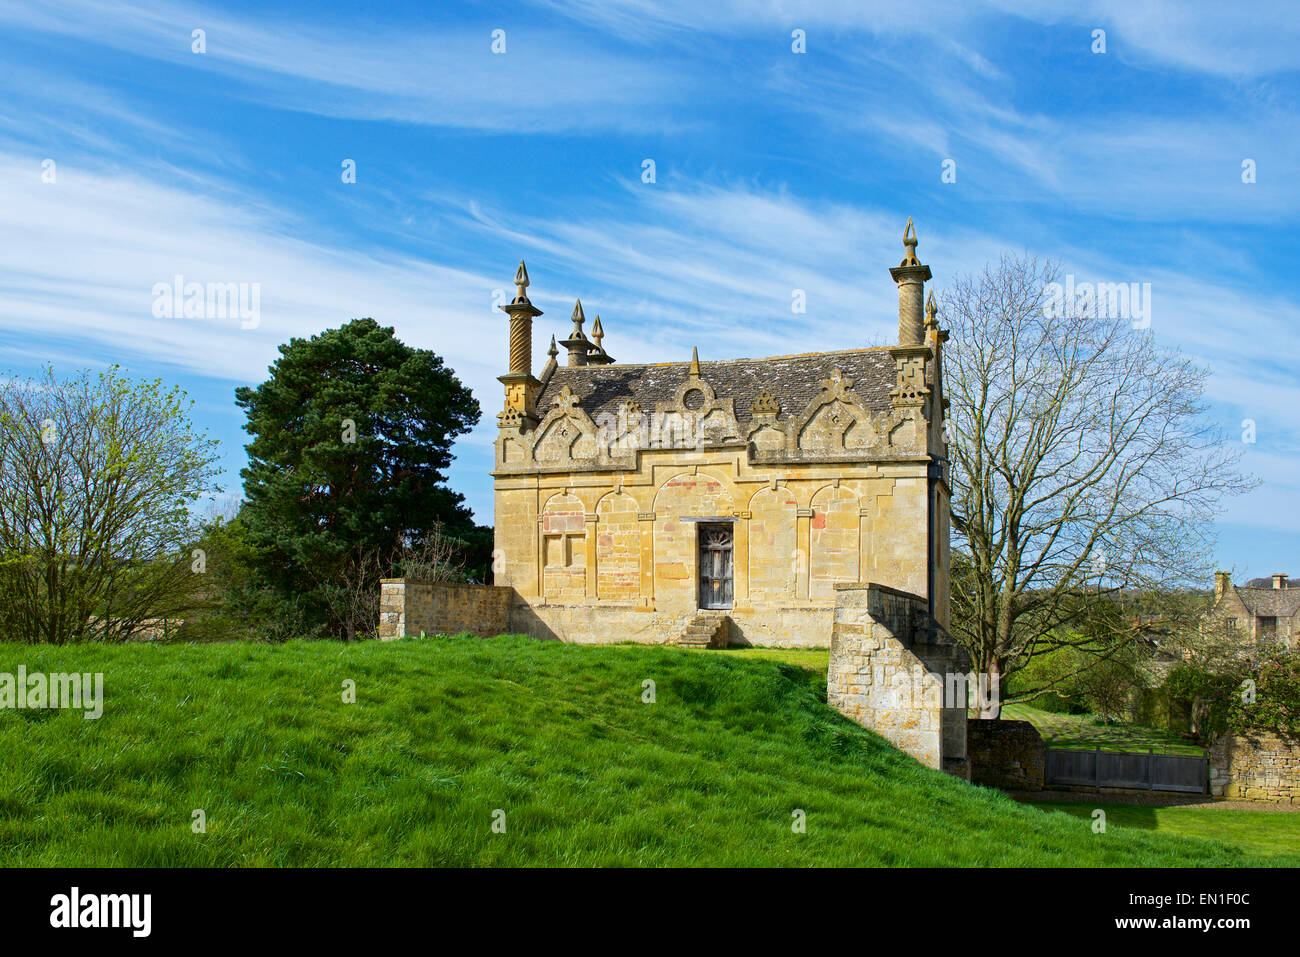 The West Banqueting House, Chipping Campden, Gloucestershire, Cotswolds, England UK - Stock Image